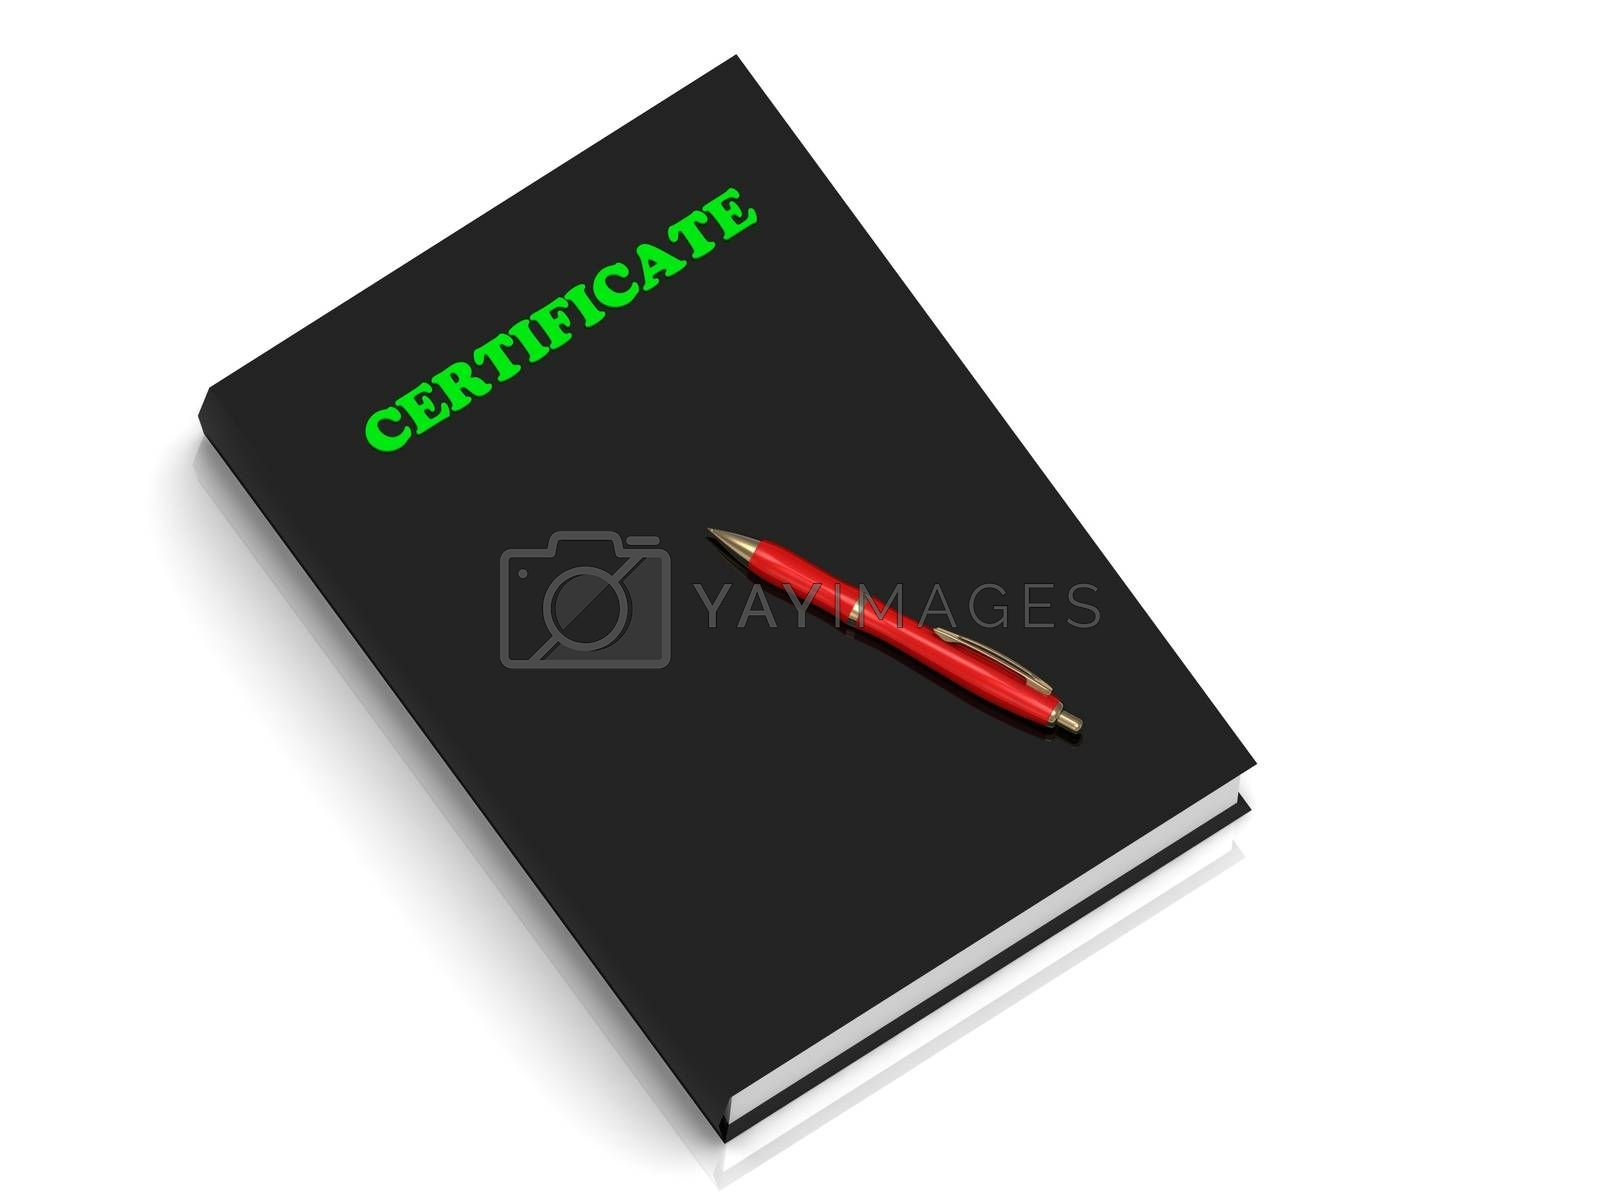 CERTIFICATE- inscription of green letters on black book on white background